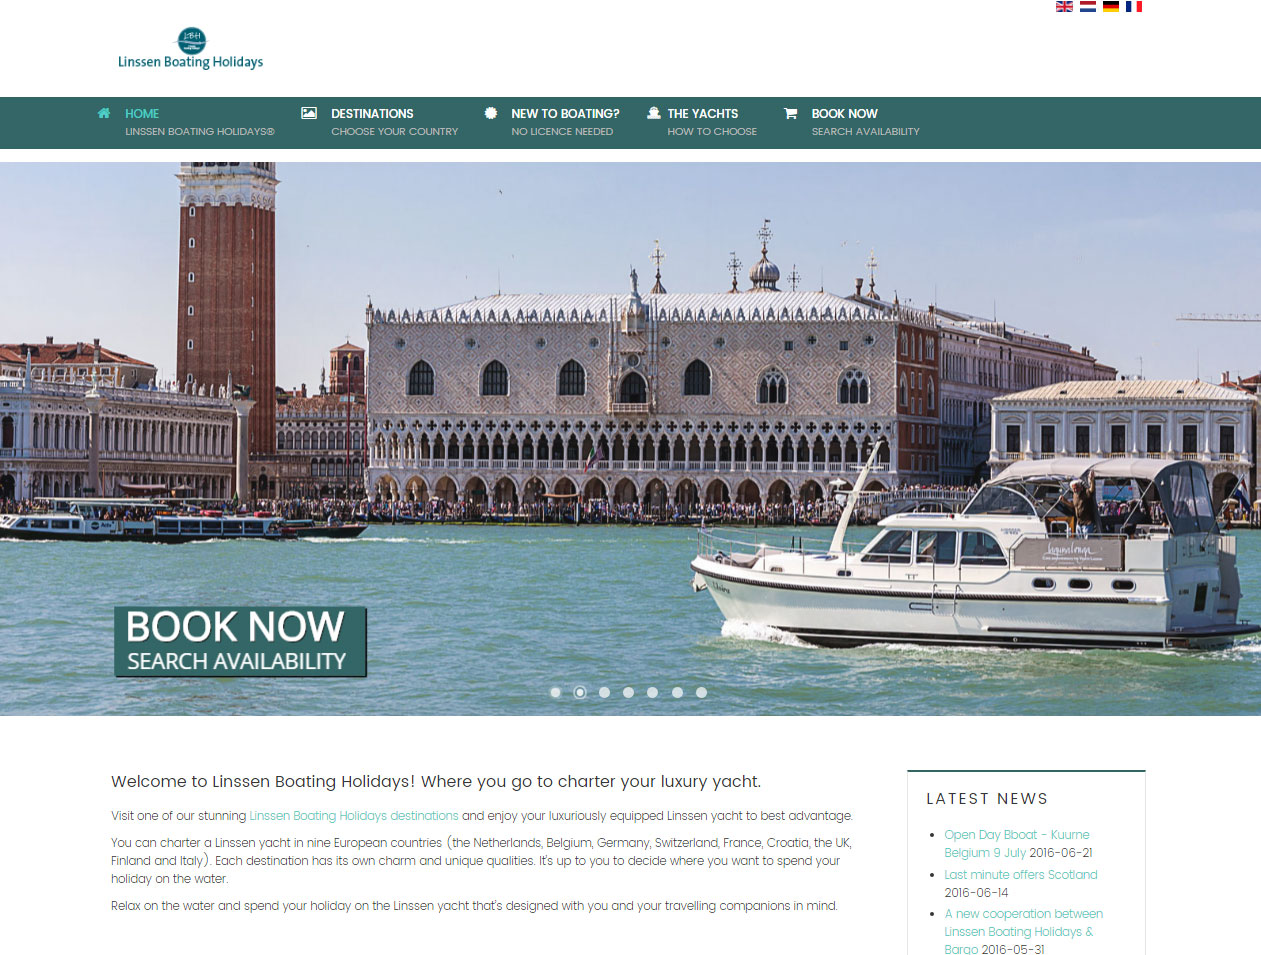 Linssen Boating Holidays website